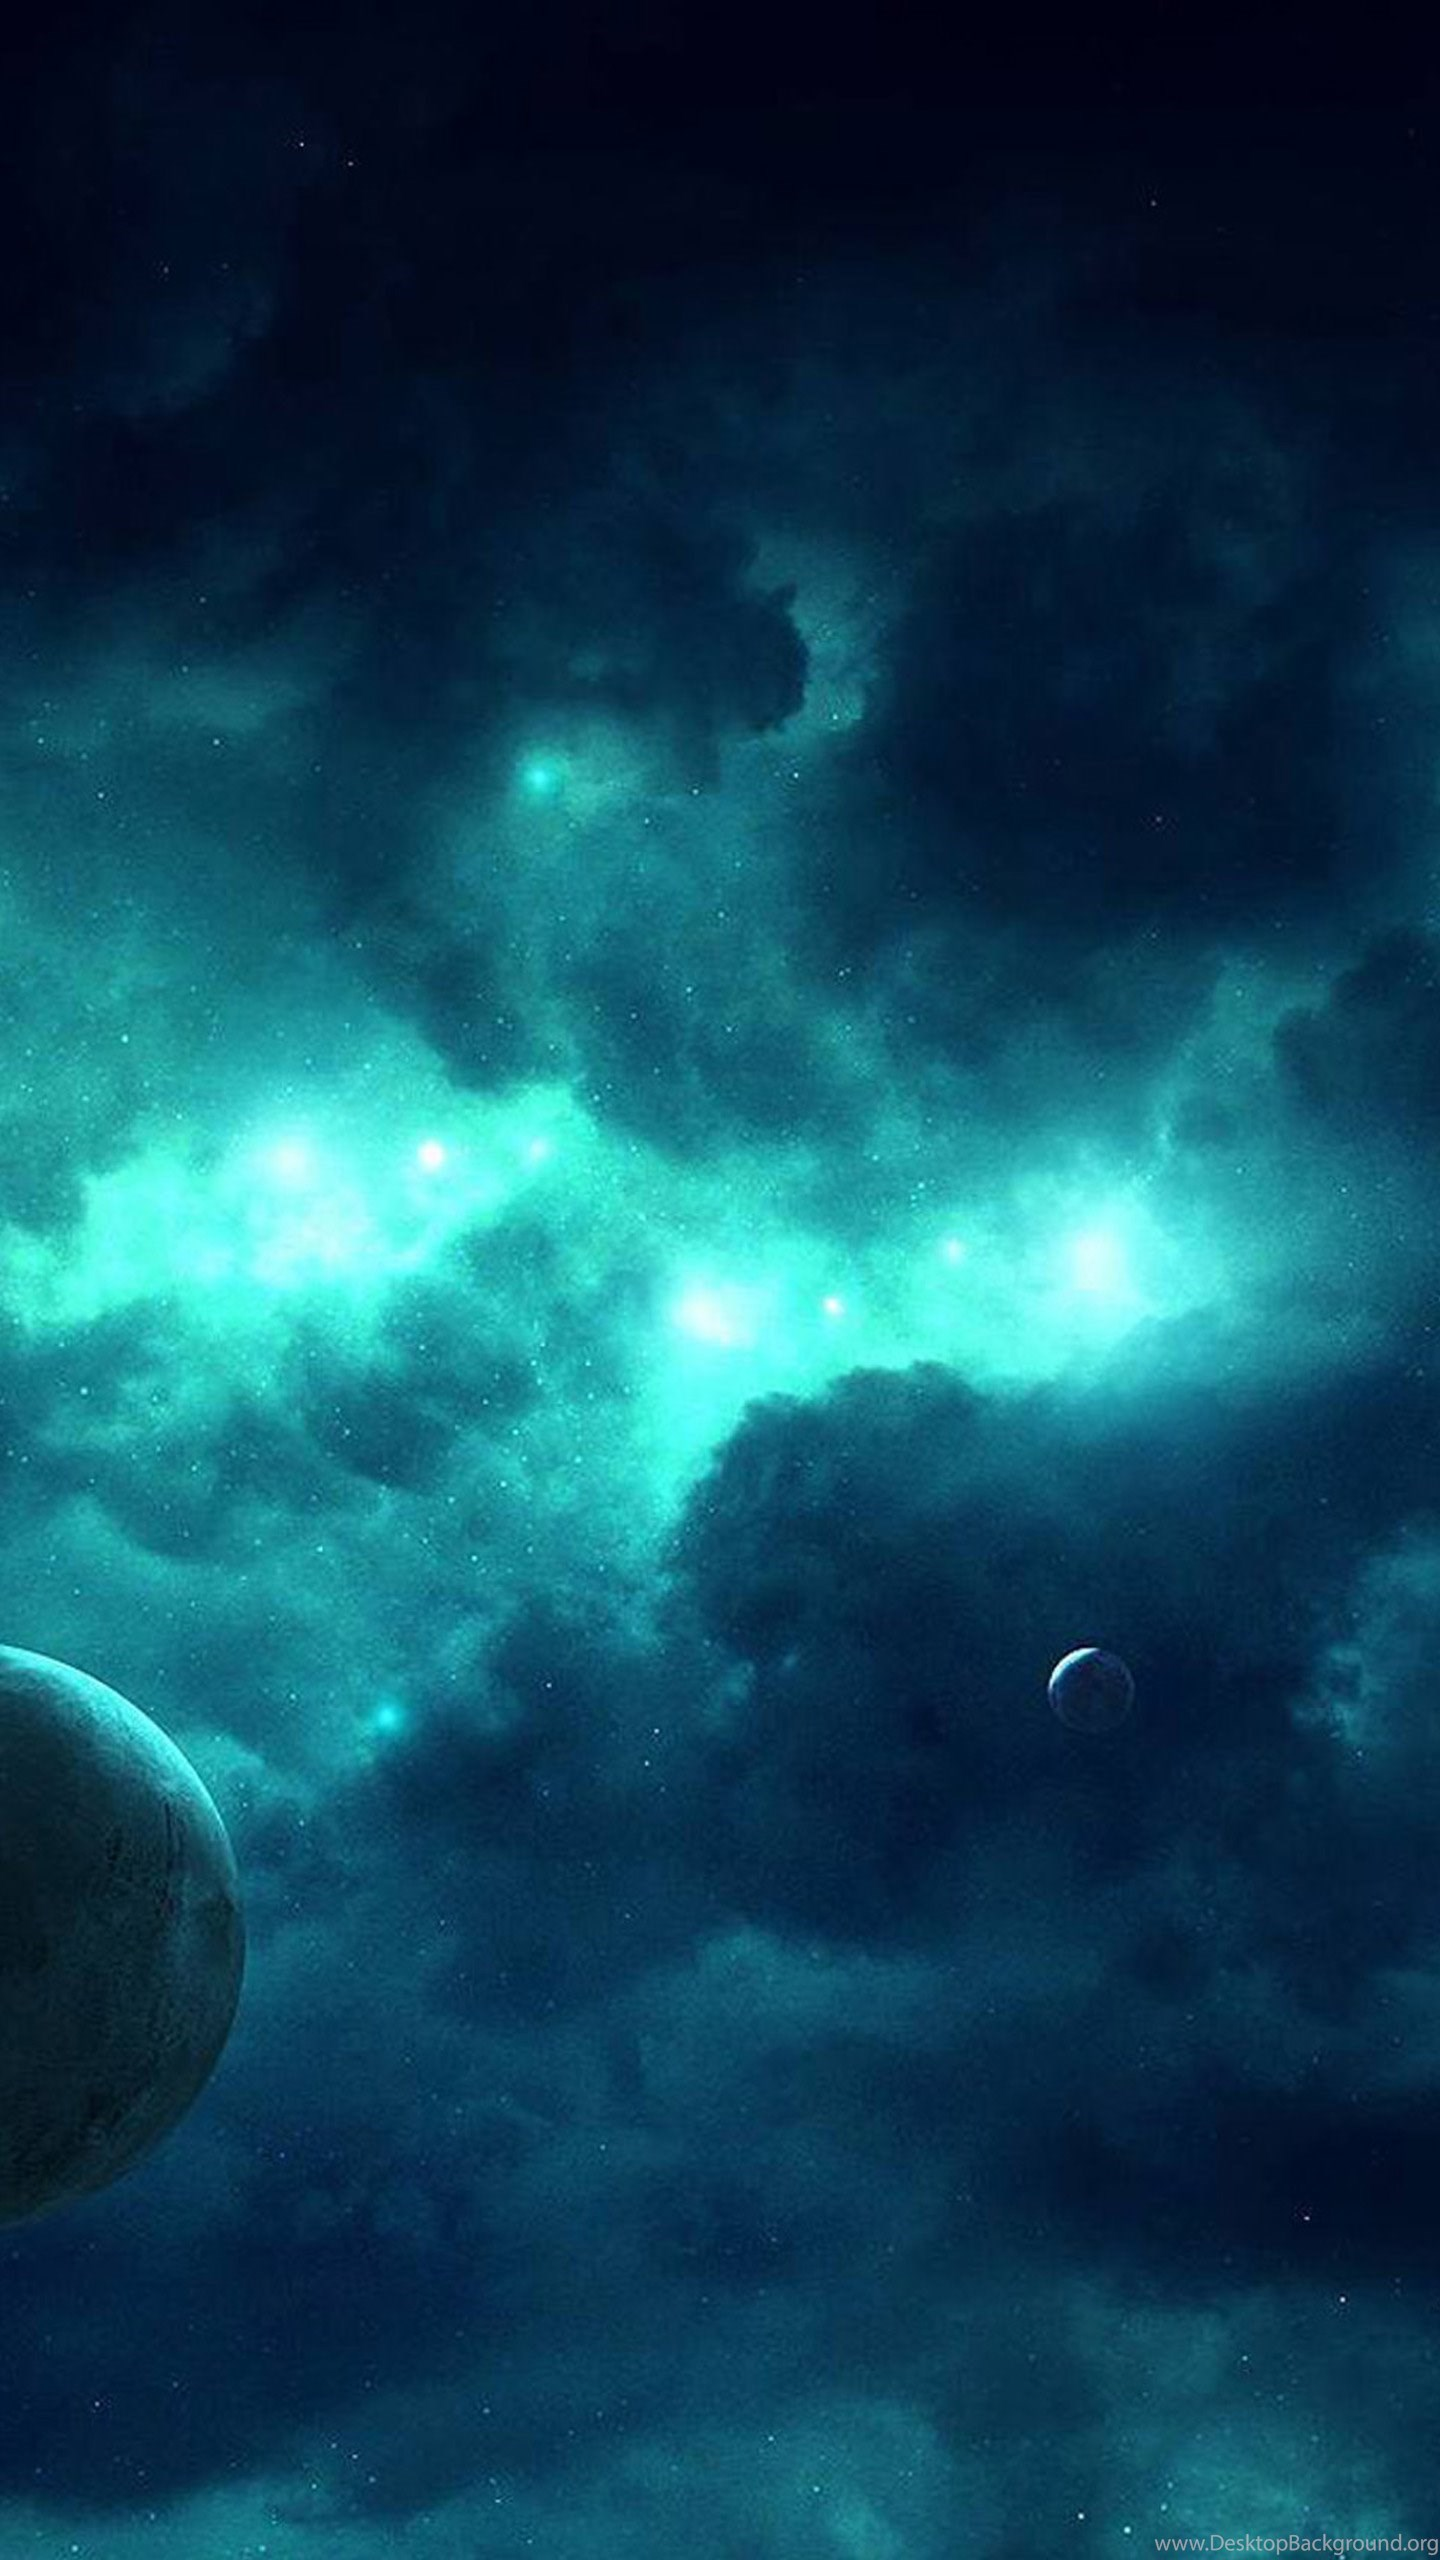 Space Wallpapers For Samsung Galaxy S6 50 Jpg Desktop Background